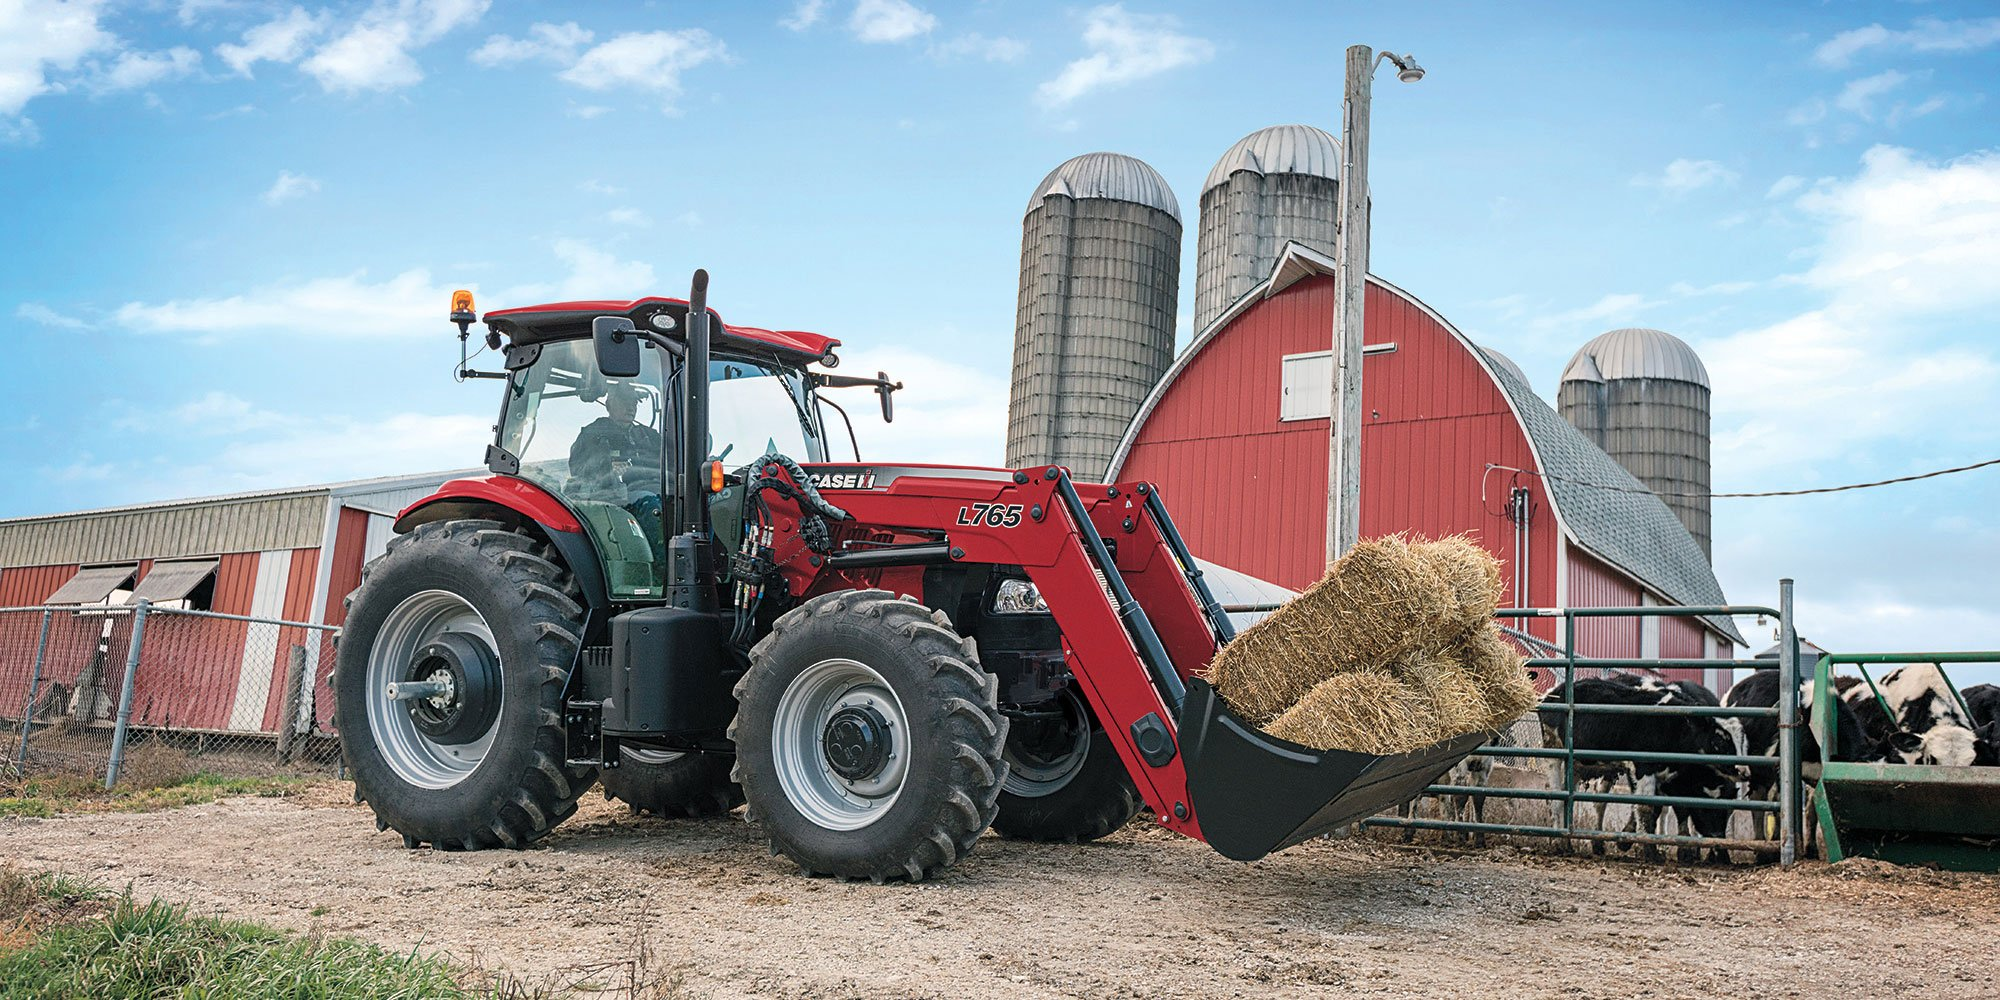 Home | Weyers Equipment | Kaukauna, WI | Case IH agricultural